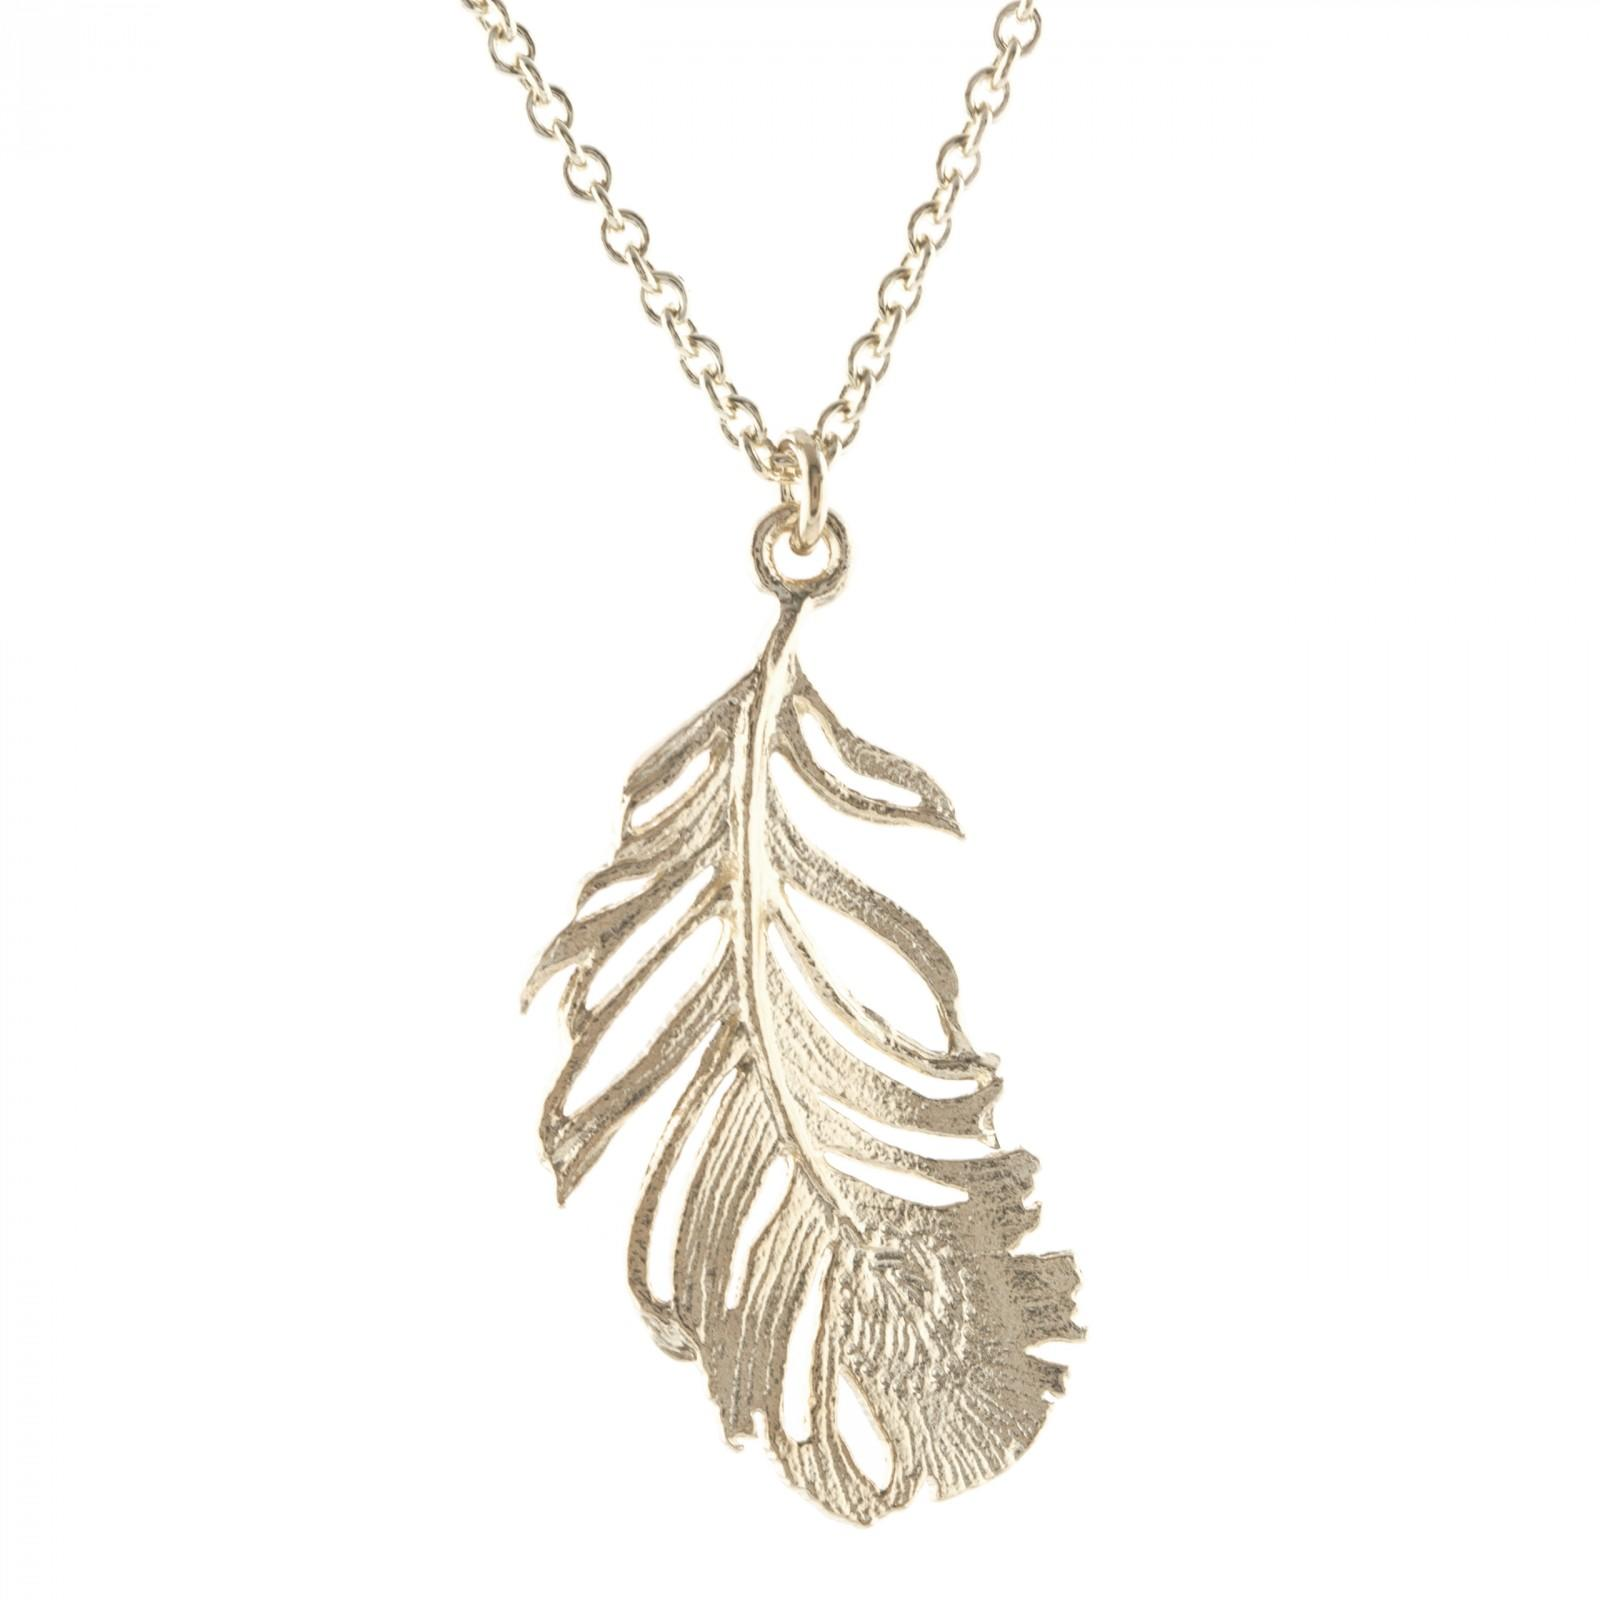 Solid silver large peacock feather £132 (available in store only)